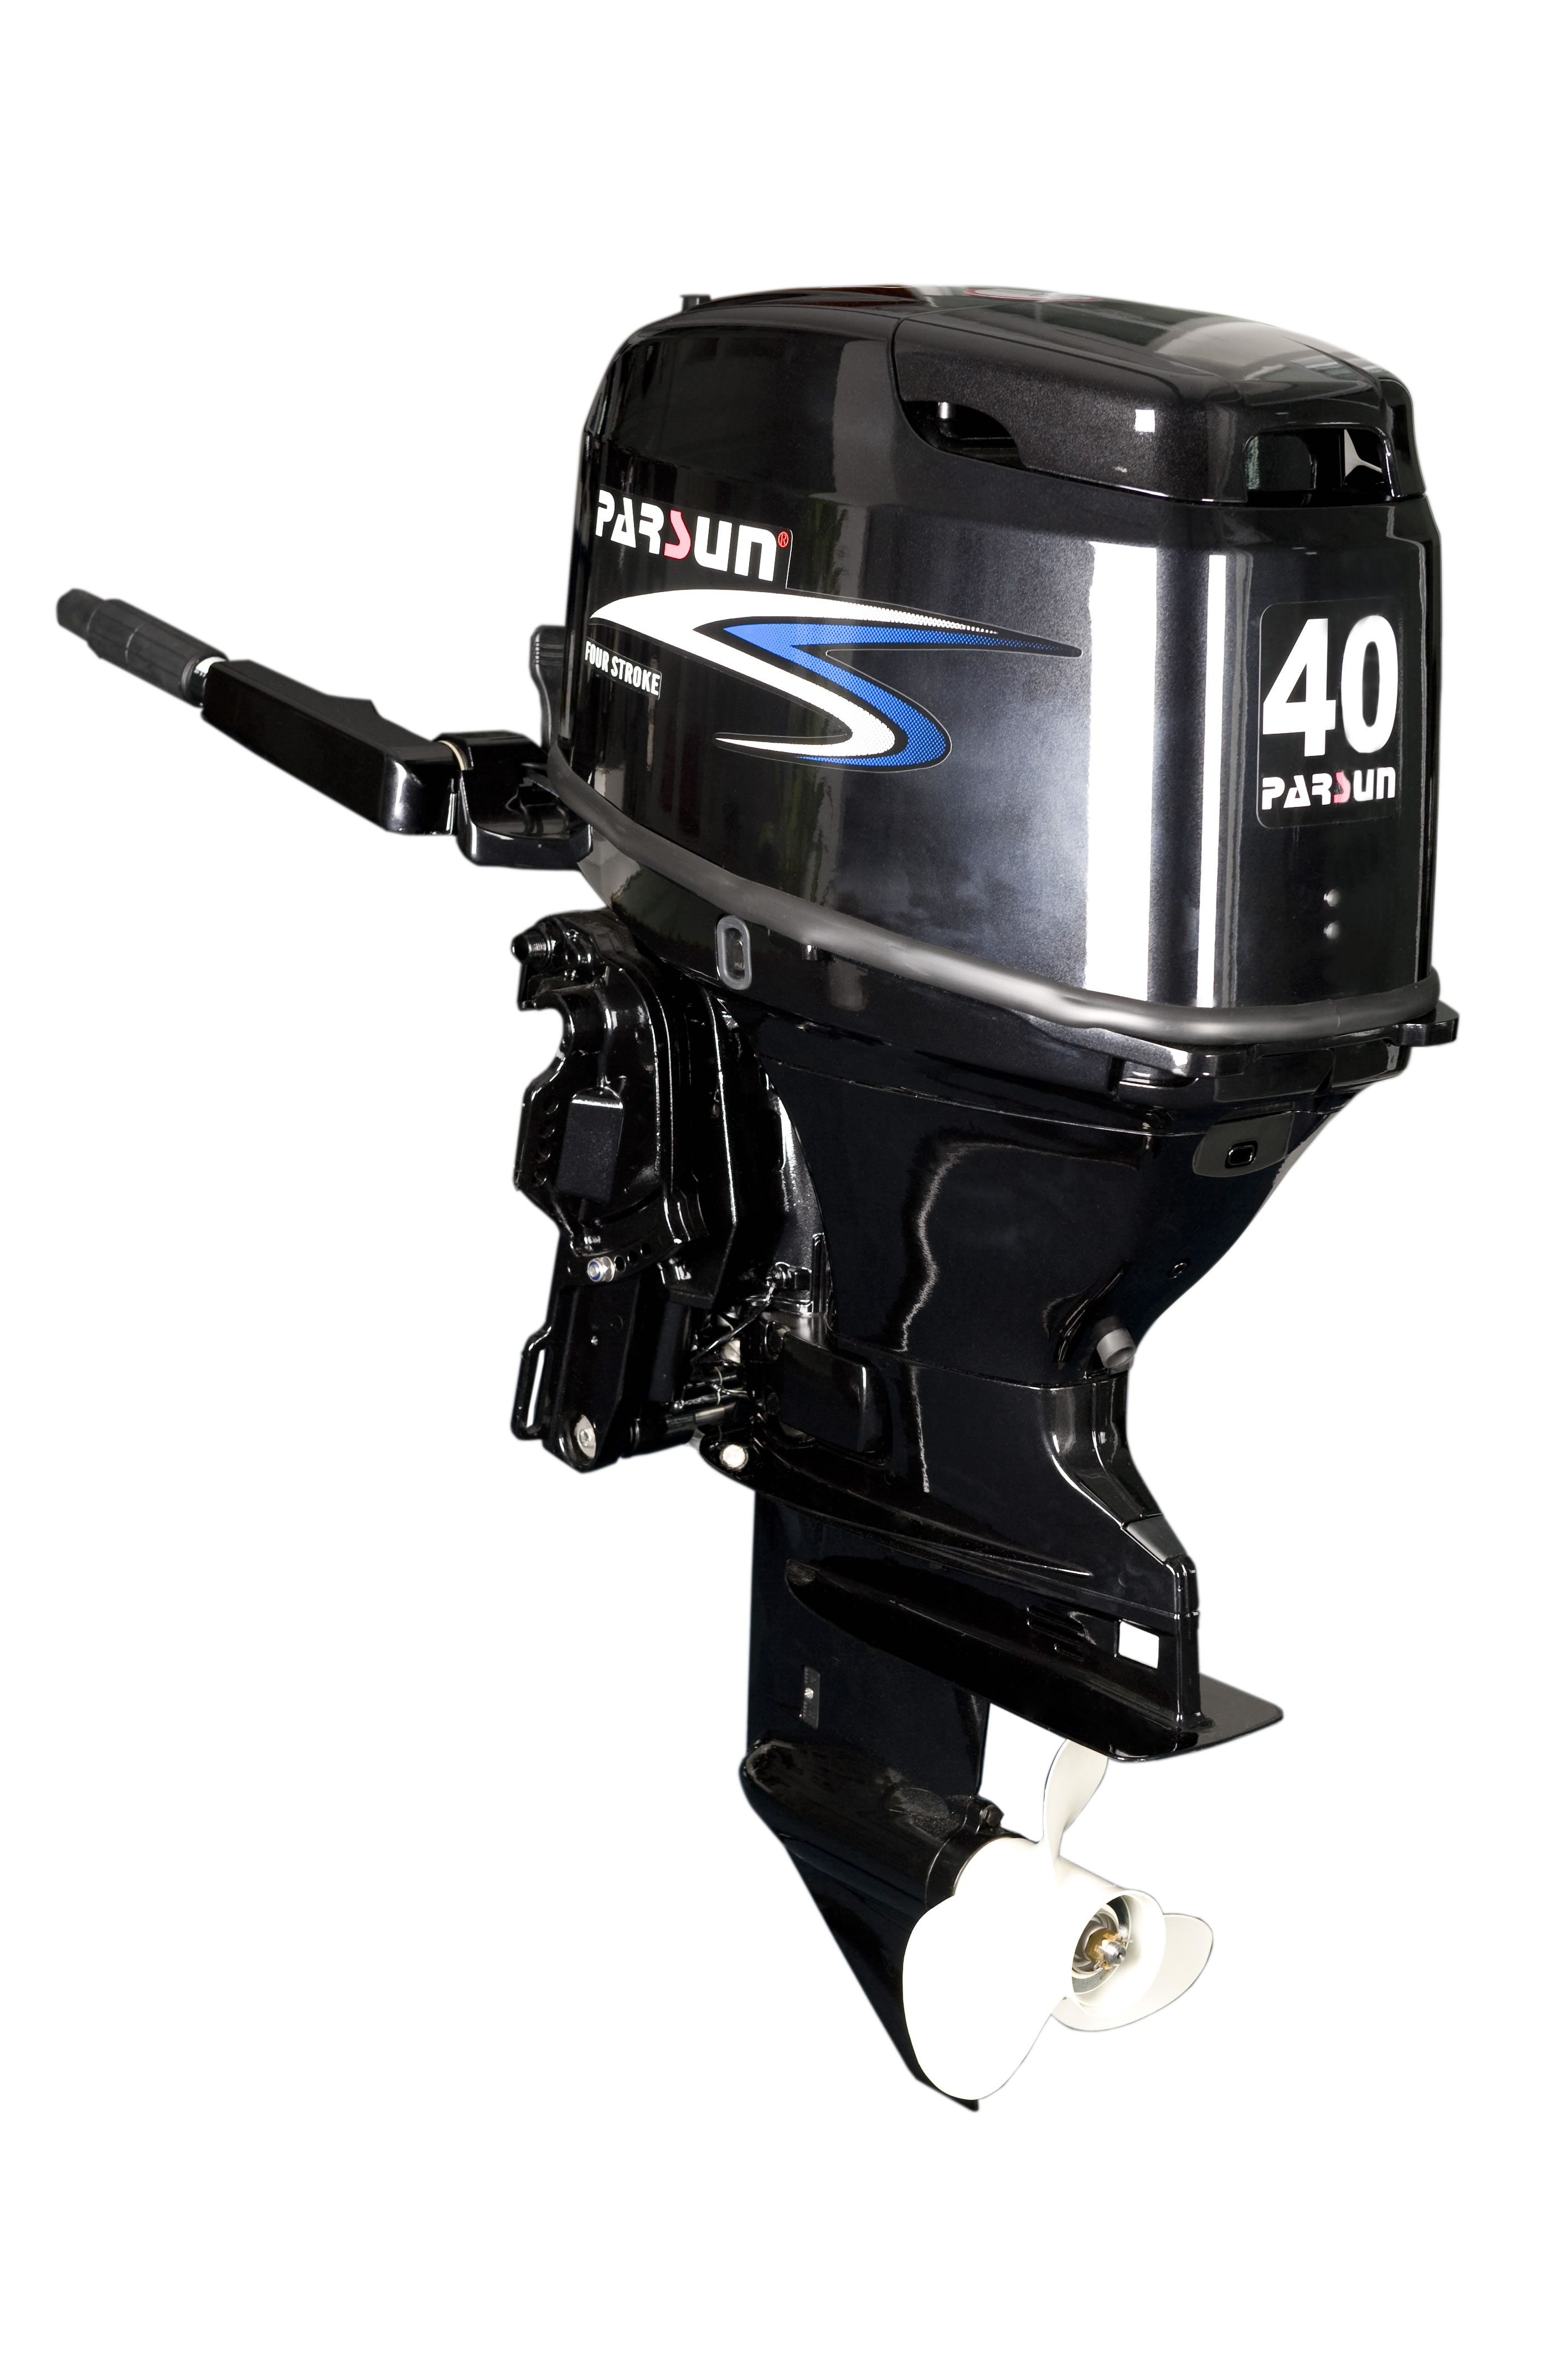 F40s Parsun Outboard Motors